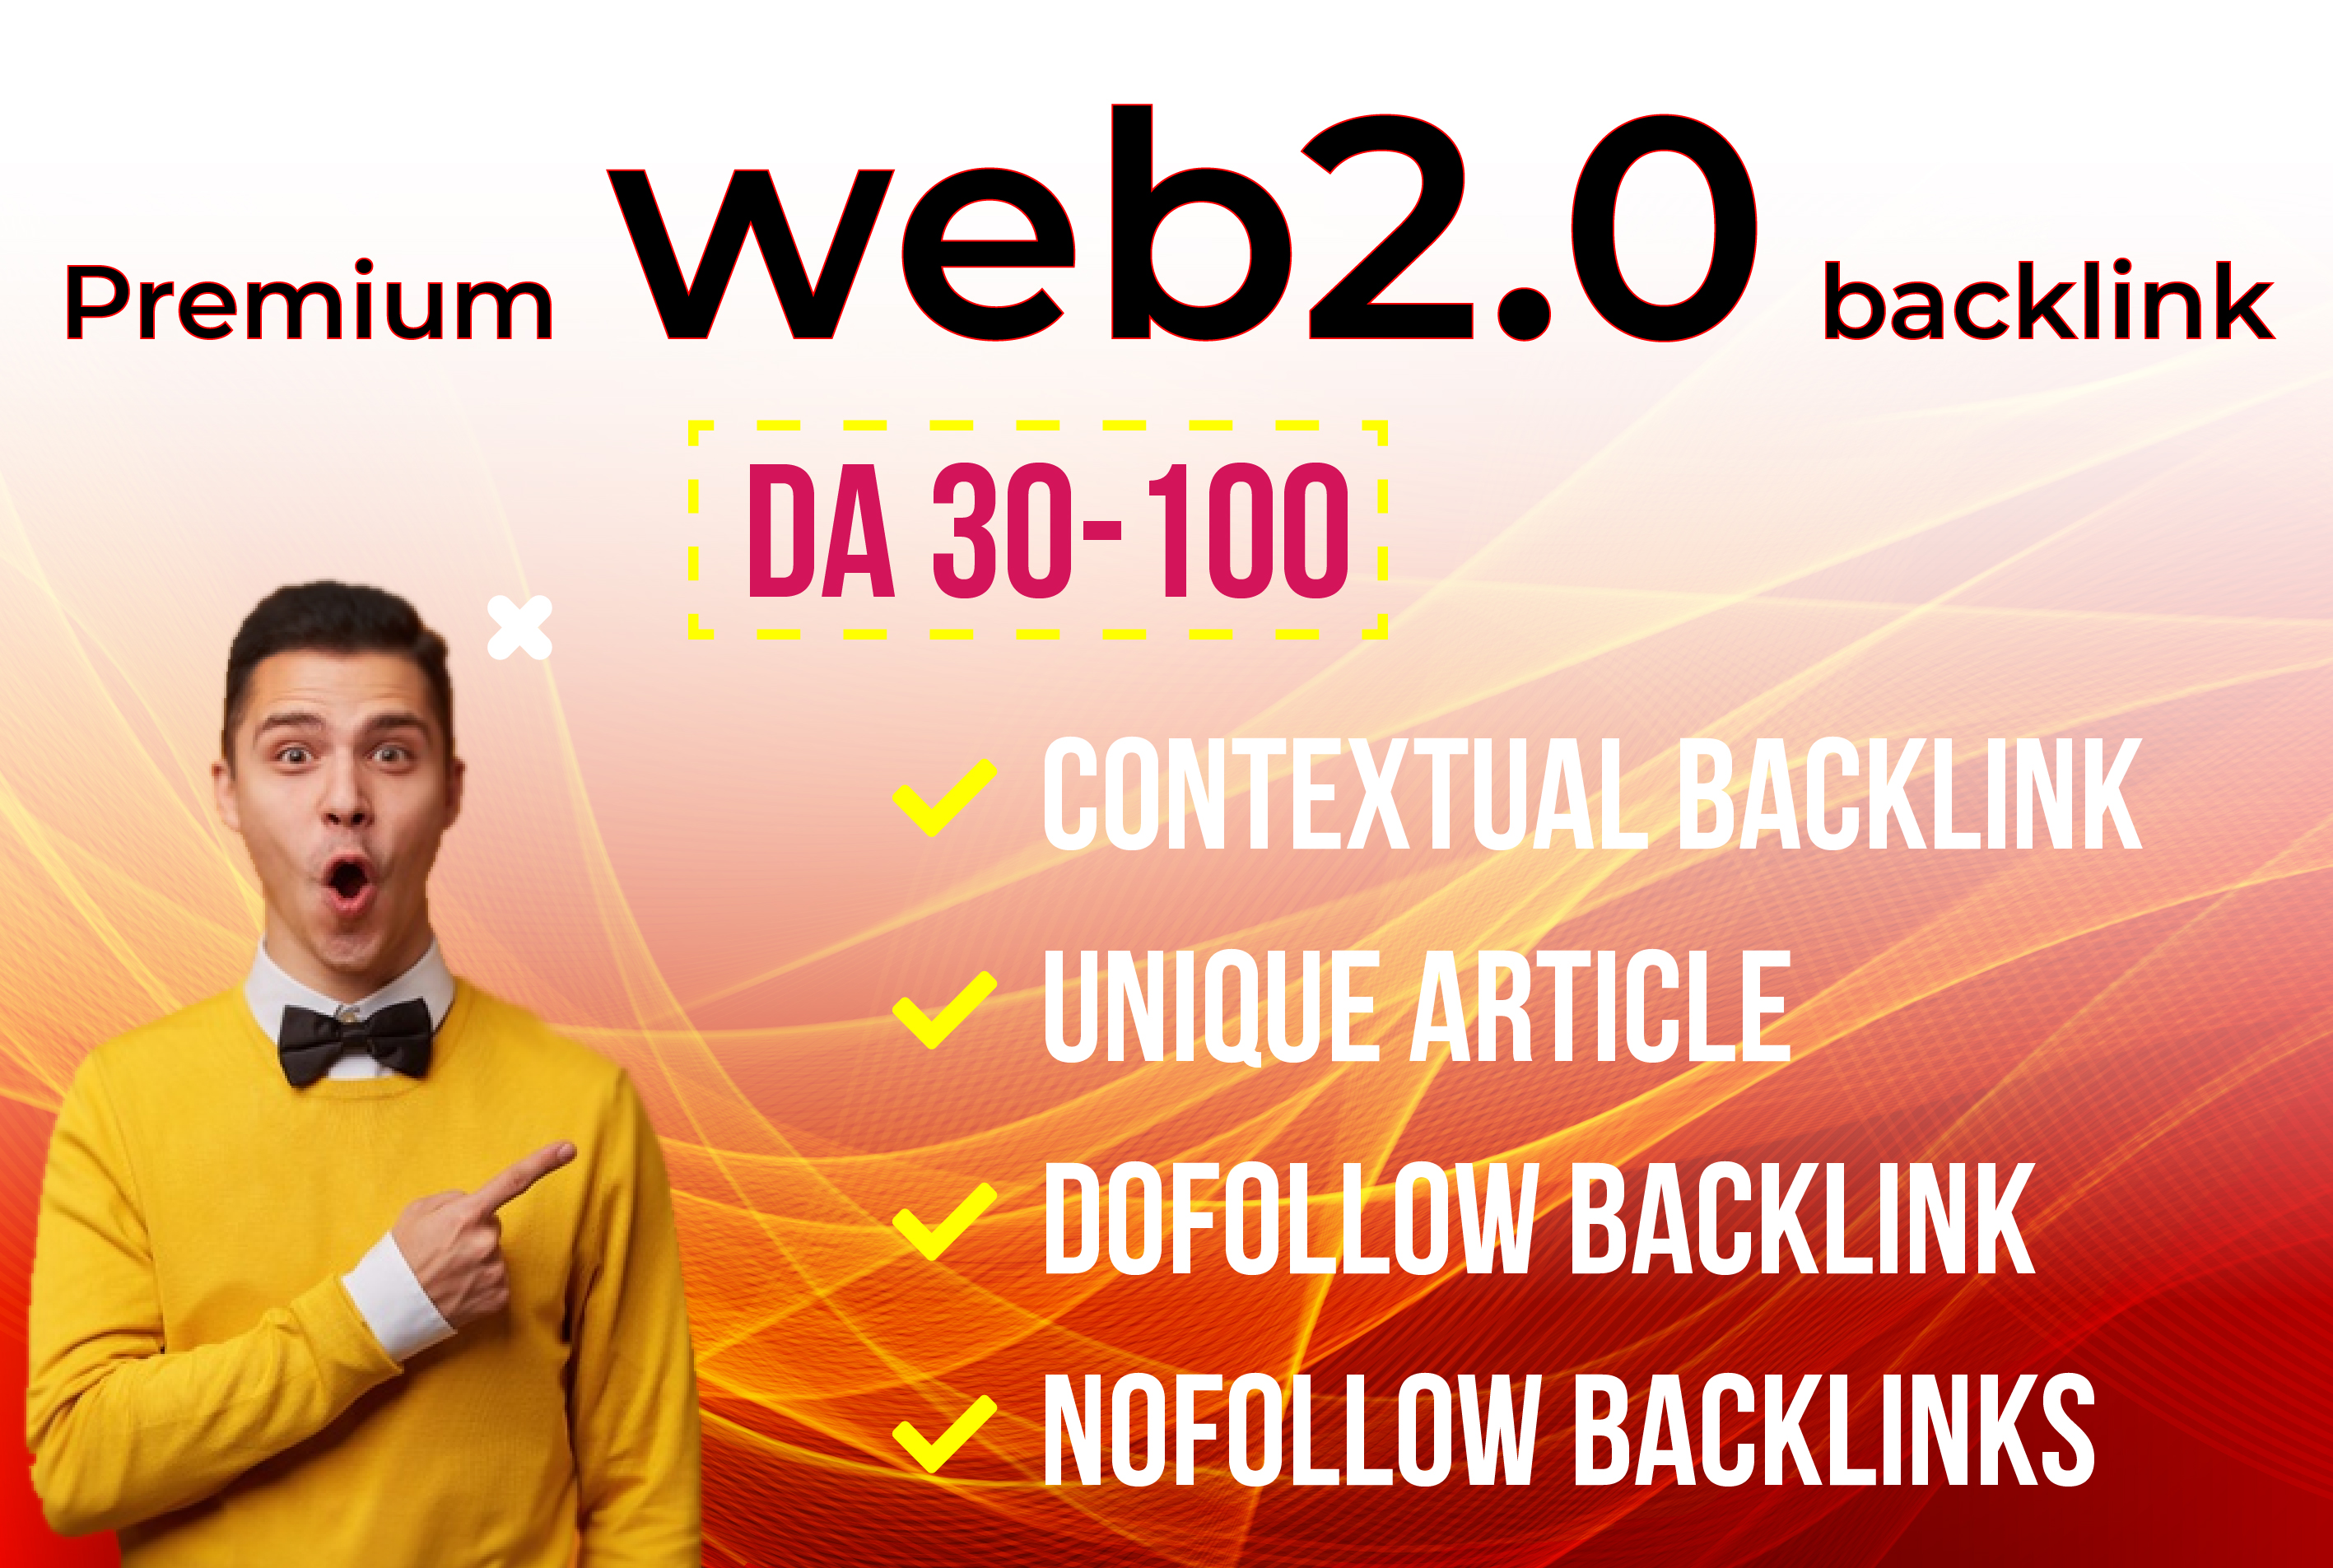 I will build web 2.0 high quality backlink